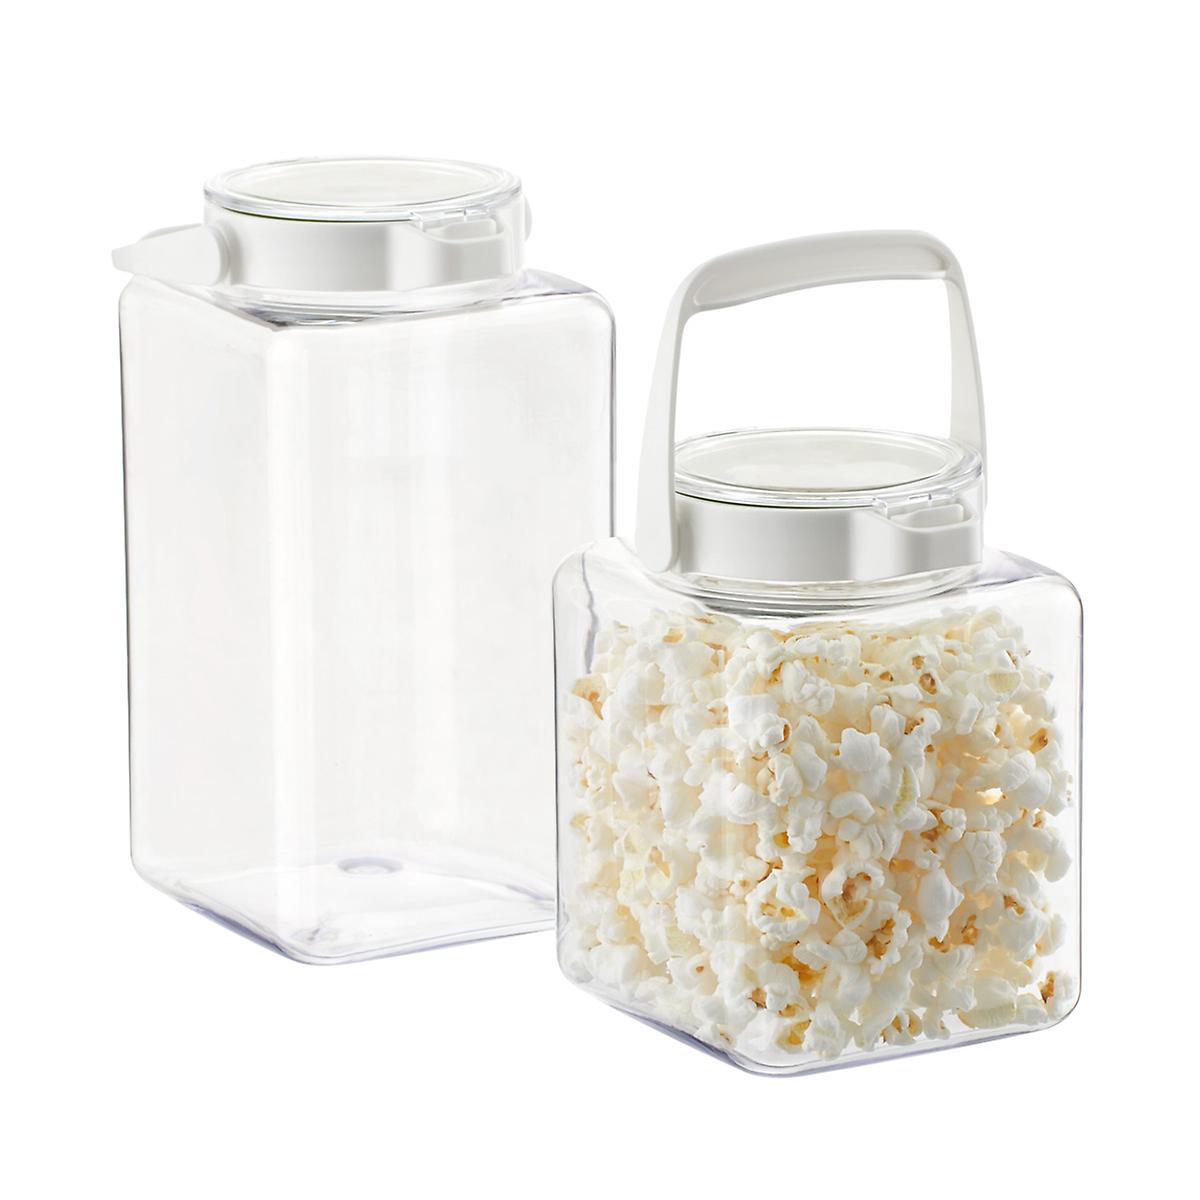 Keepots Canisters